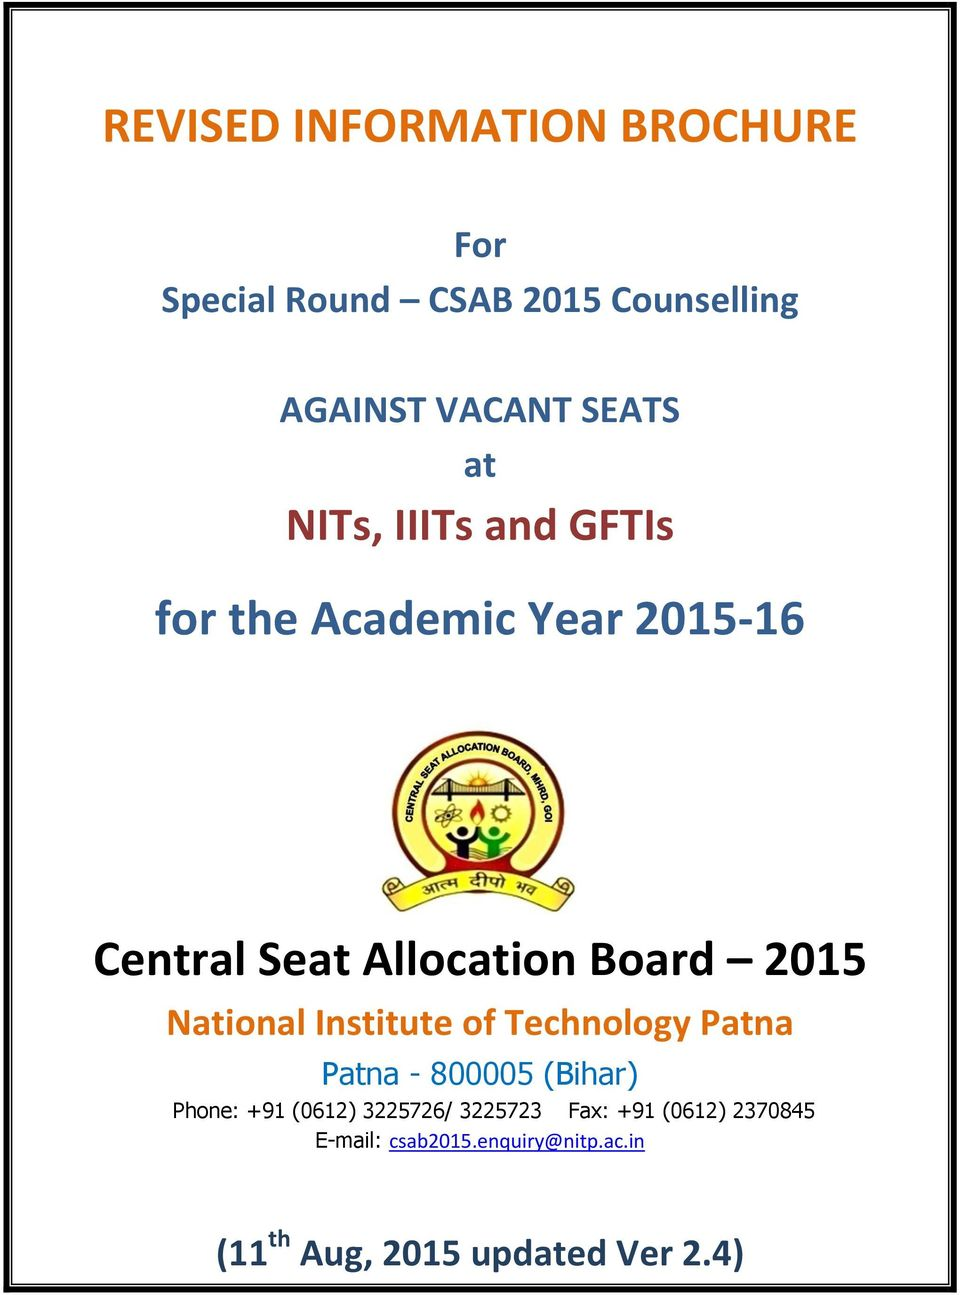 National Institute of Technology Patna Patna - 800005 (Bihar) Phone: +91 (0612) 3225726/